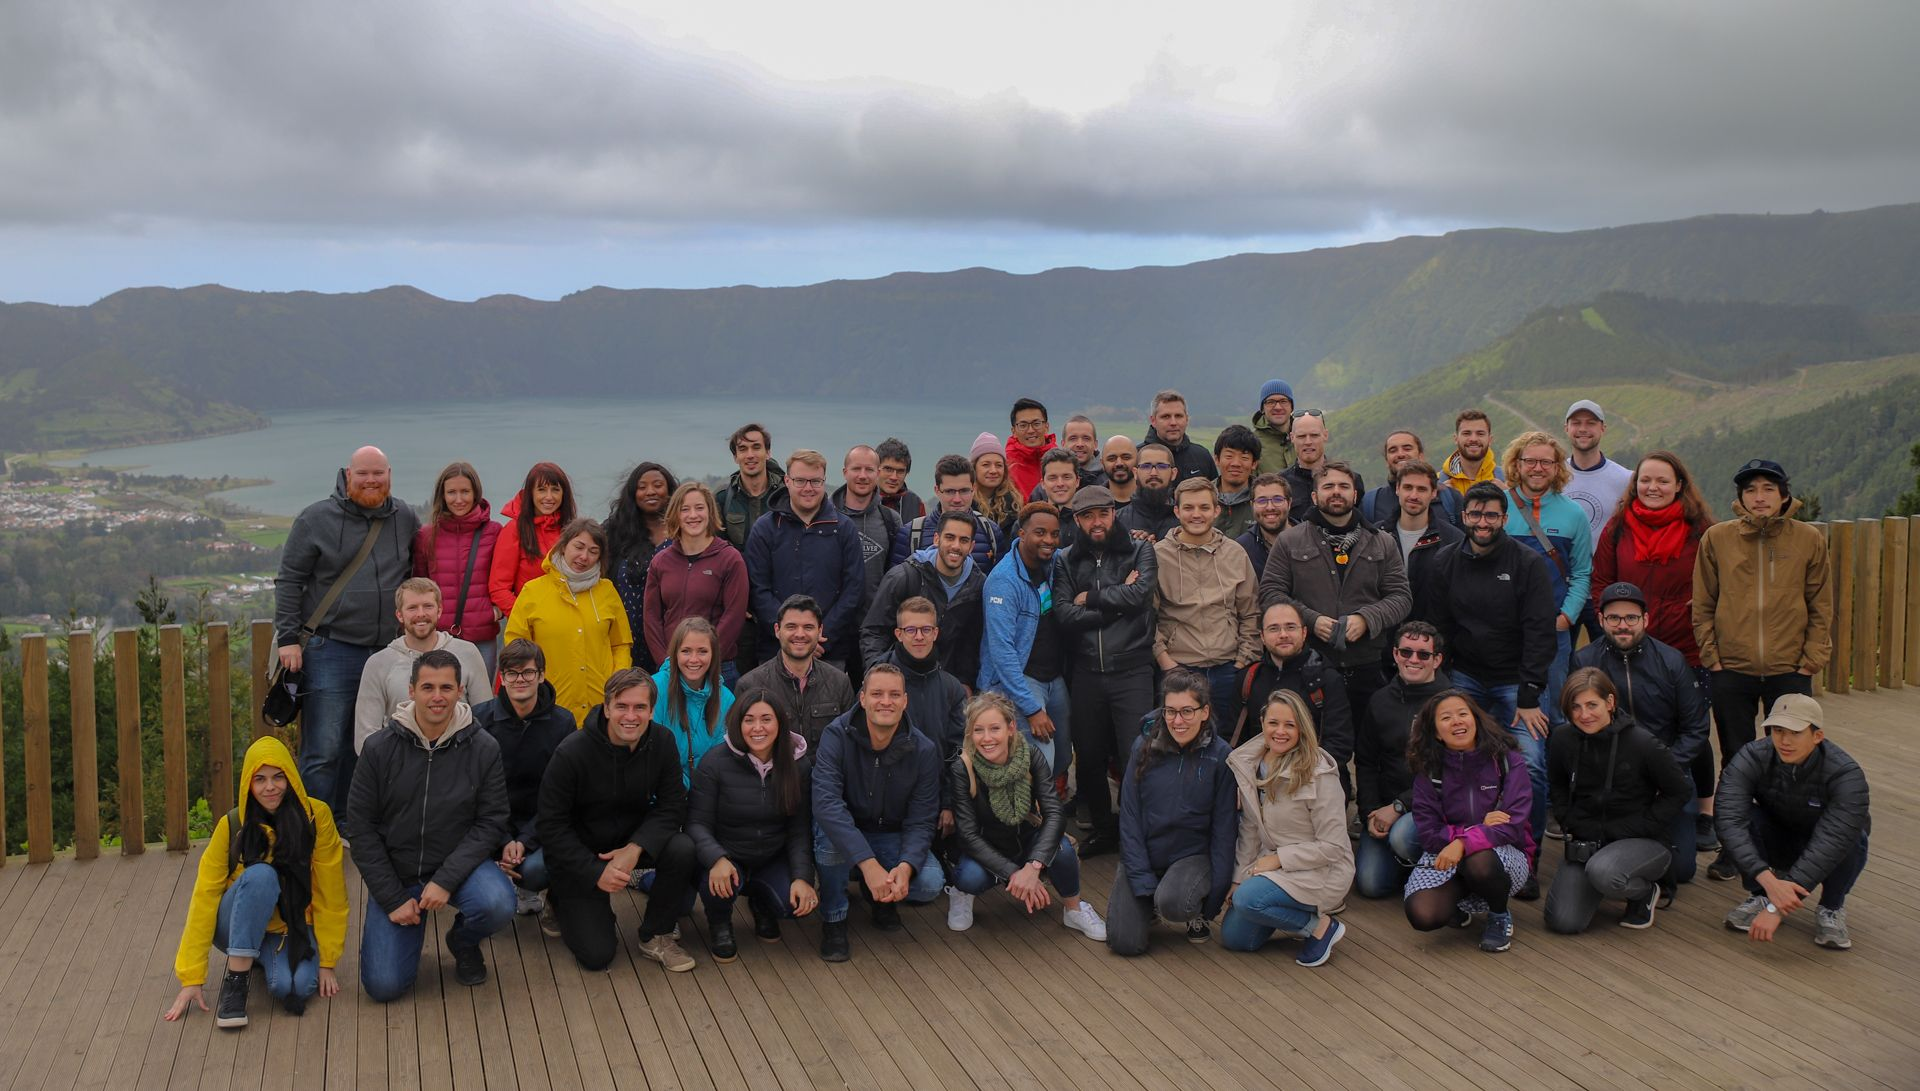 Doist in the Azores, Portugal (2019)